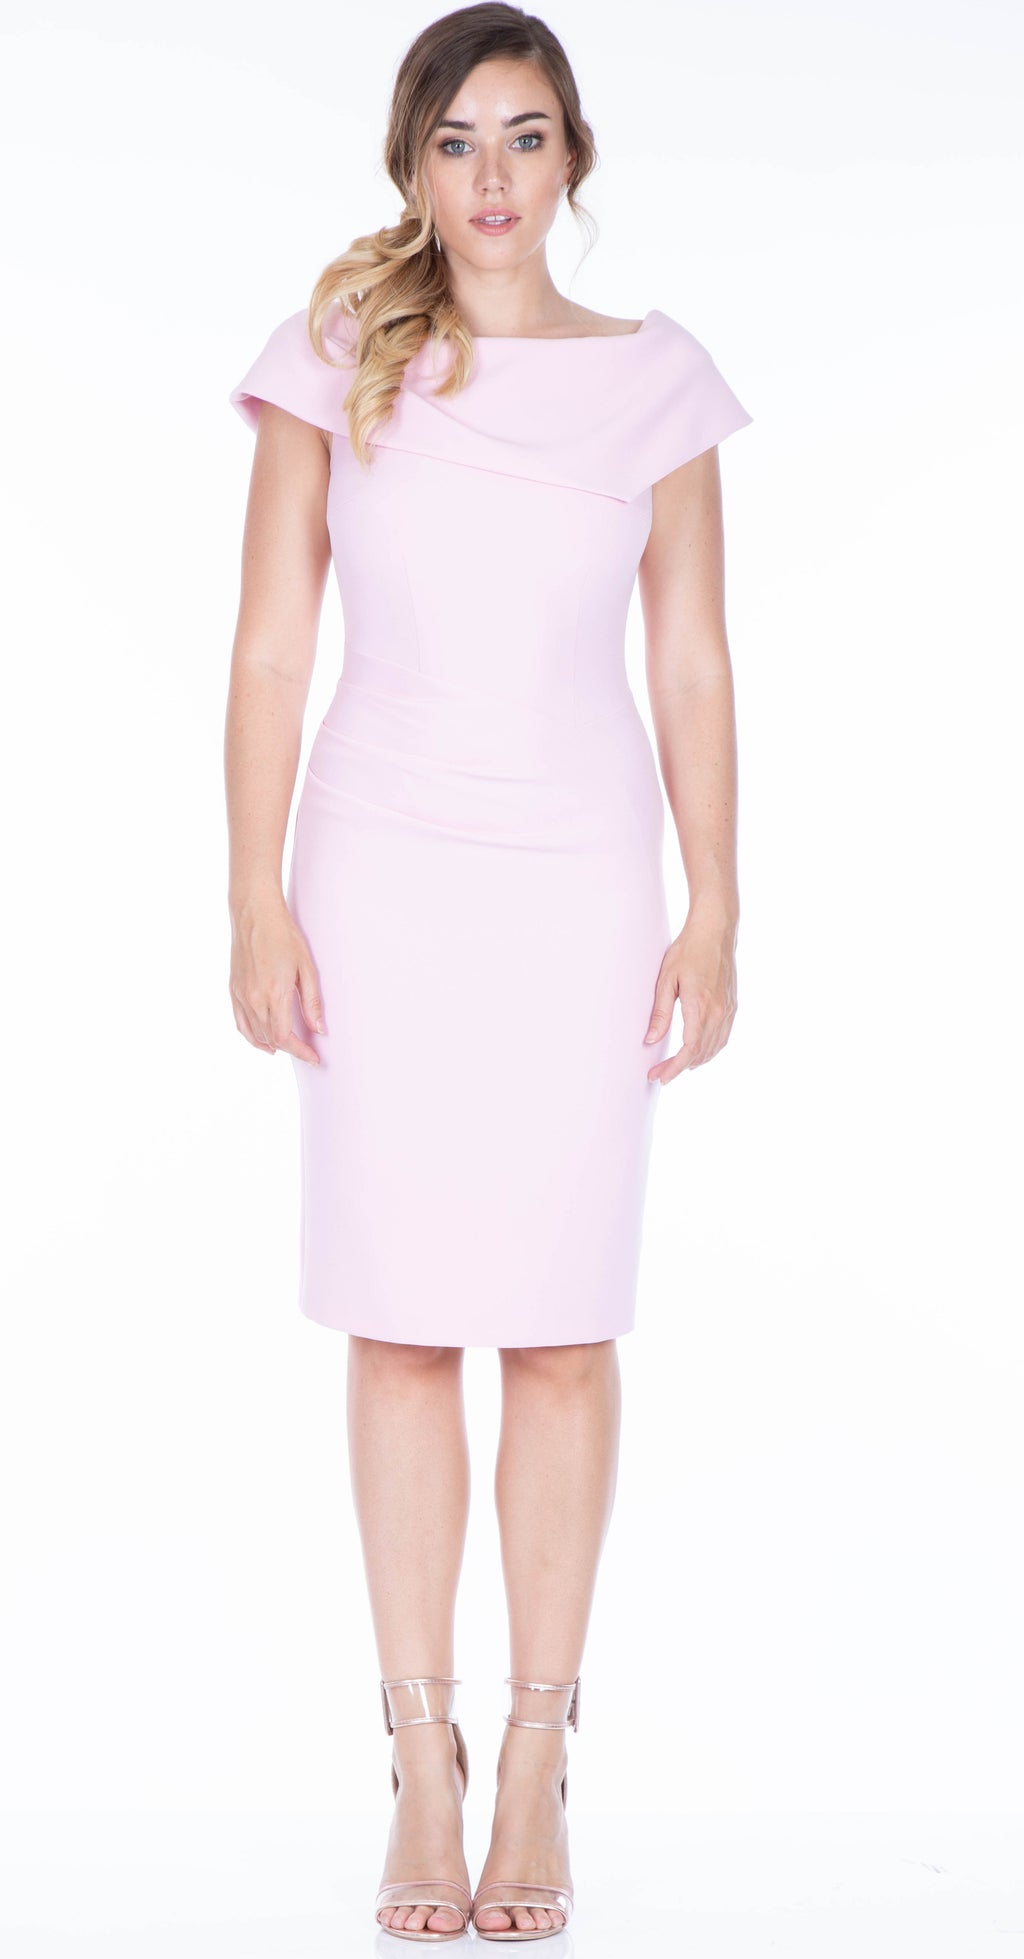 Olympia Dress DRC233 Pale Pink